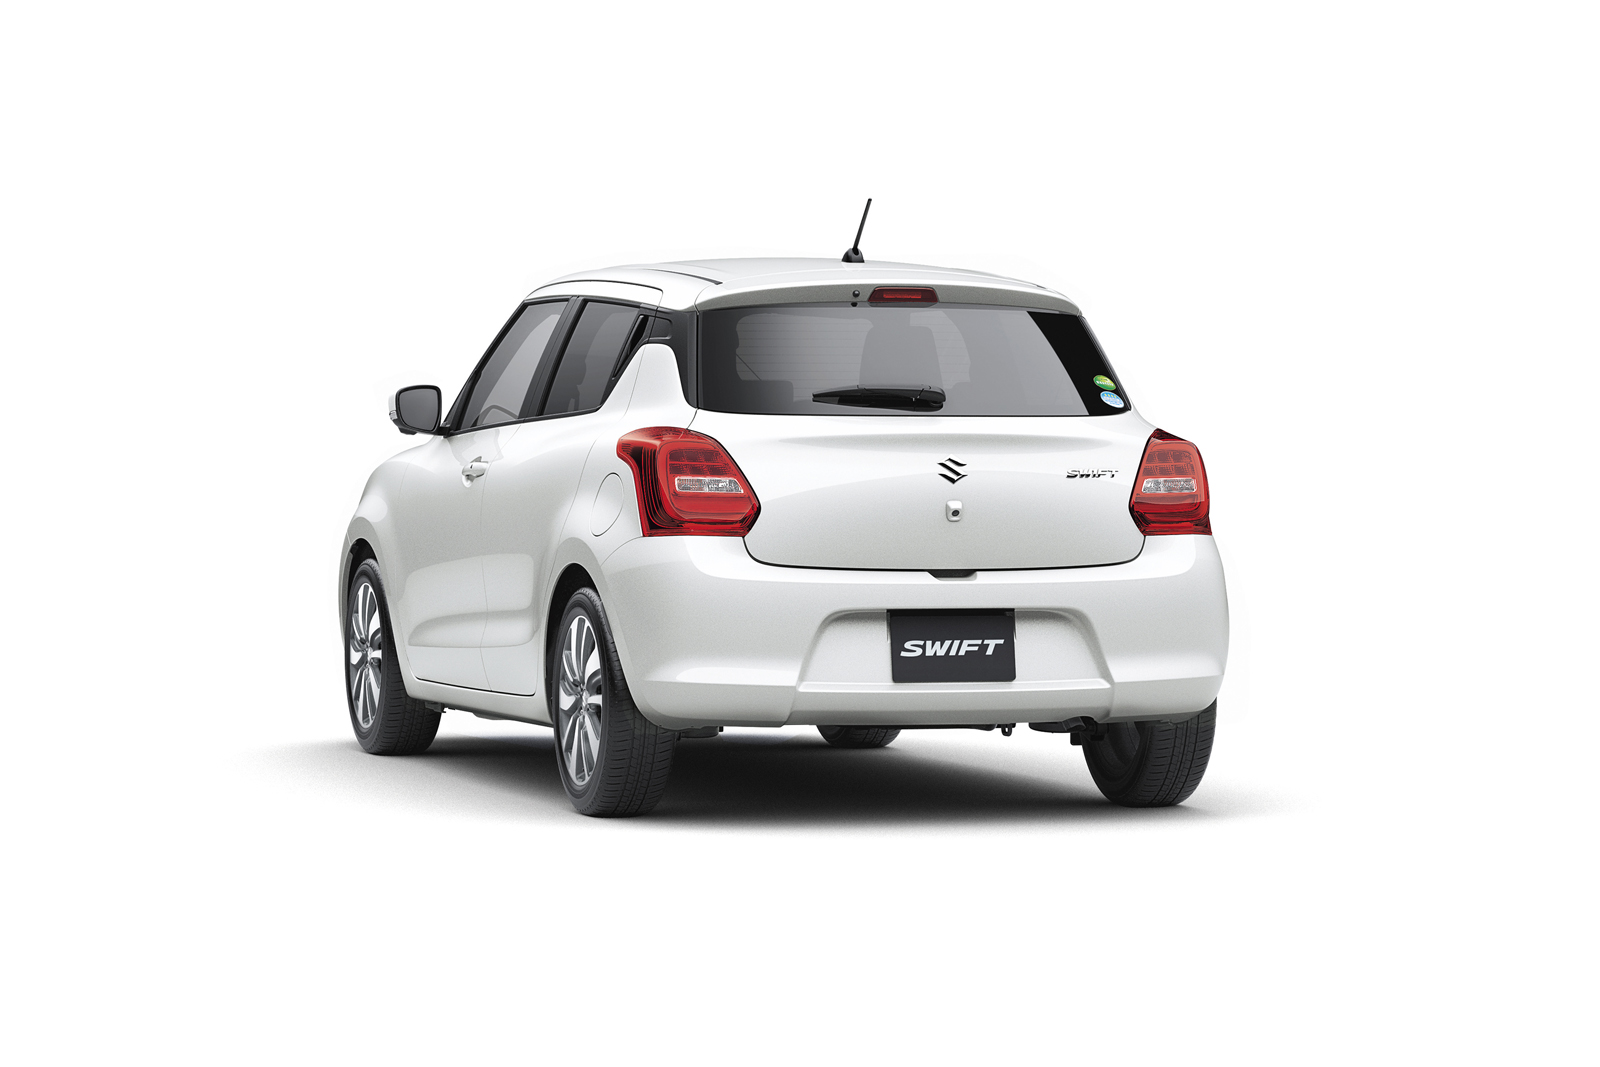 Suzuki Swift 2017 (2)